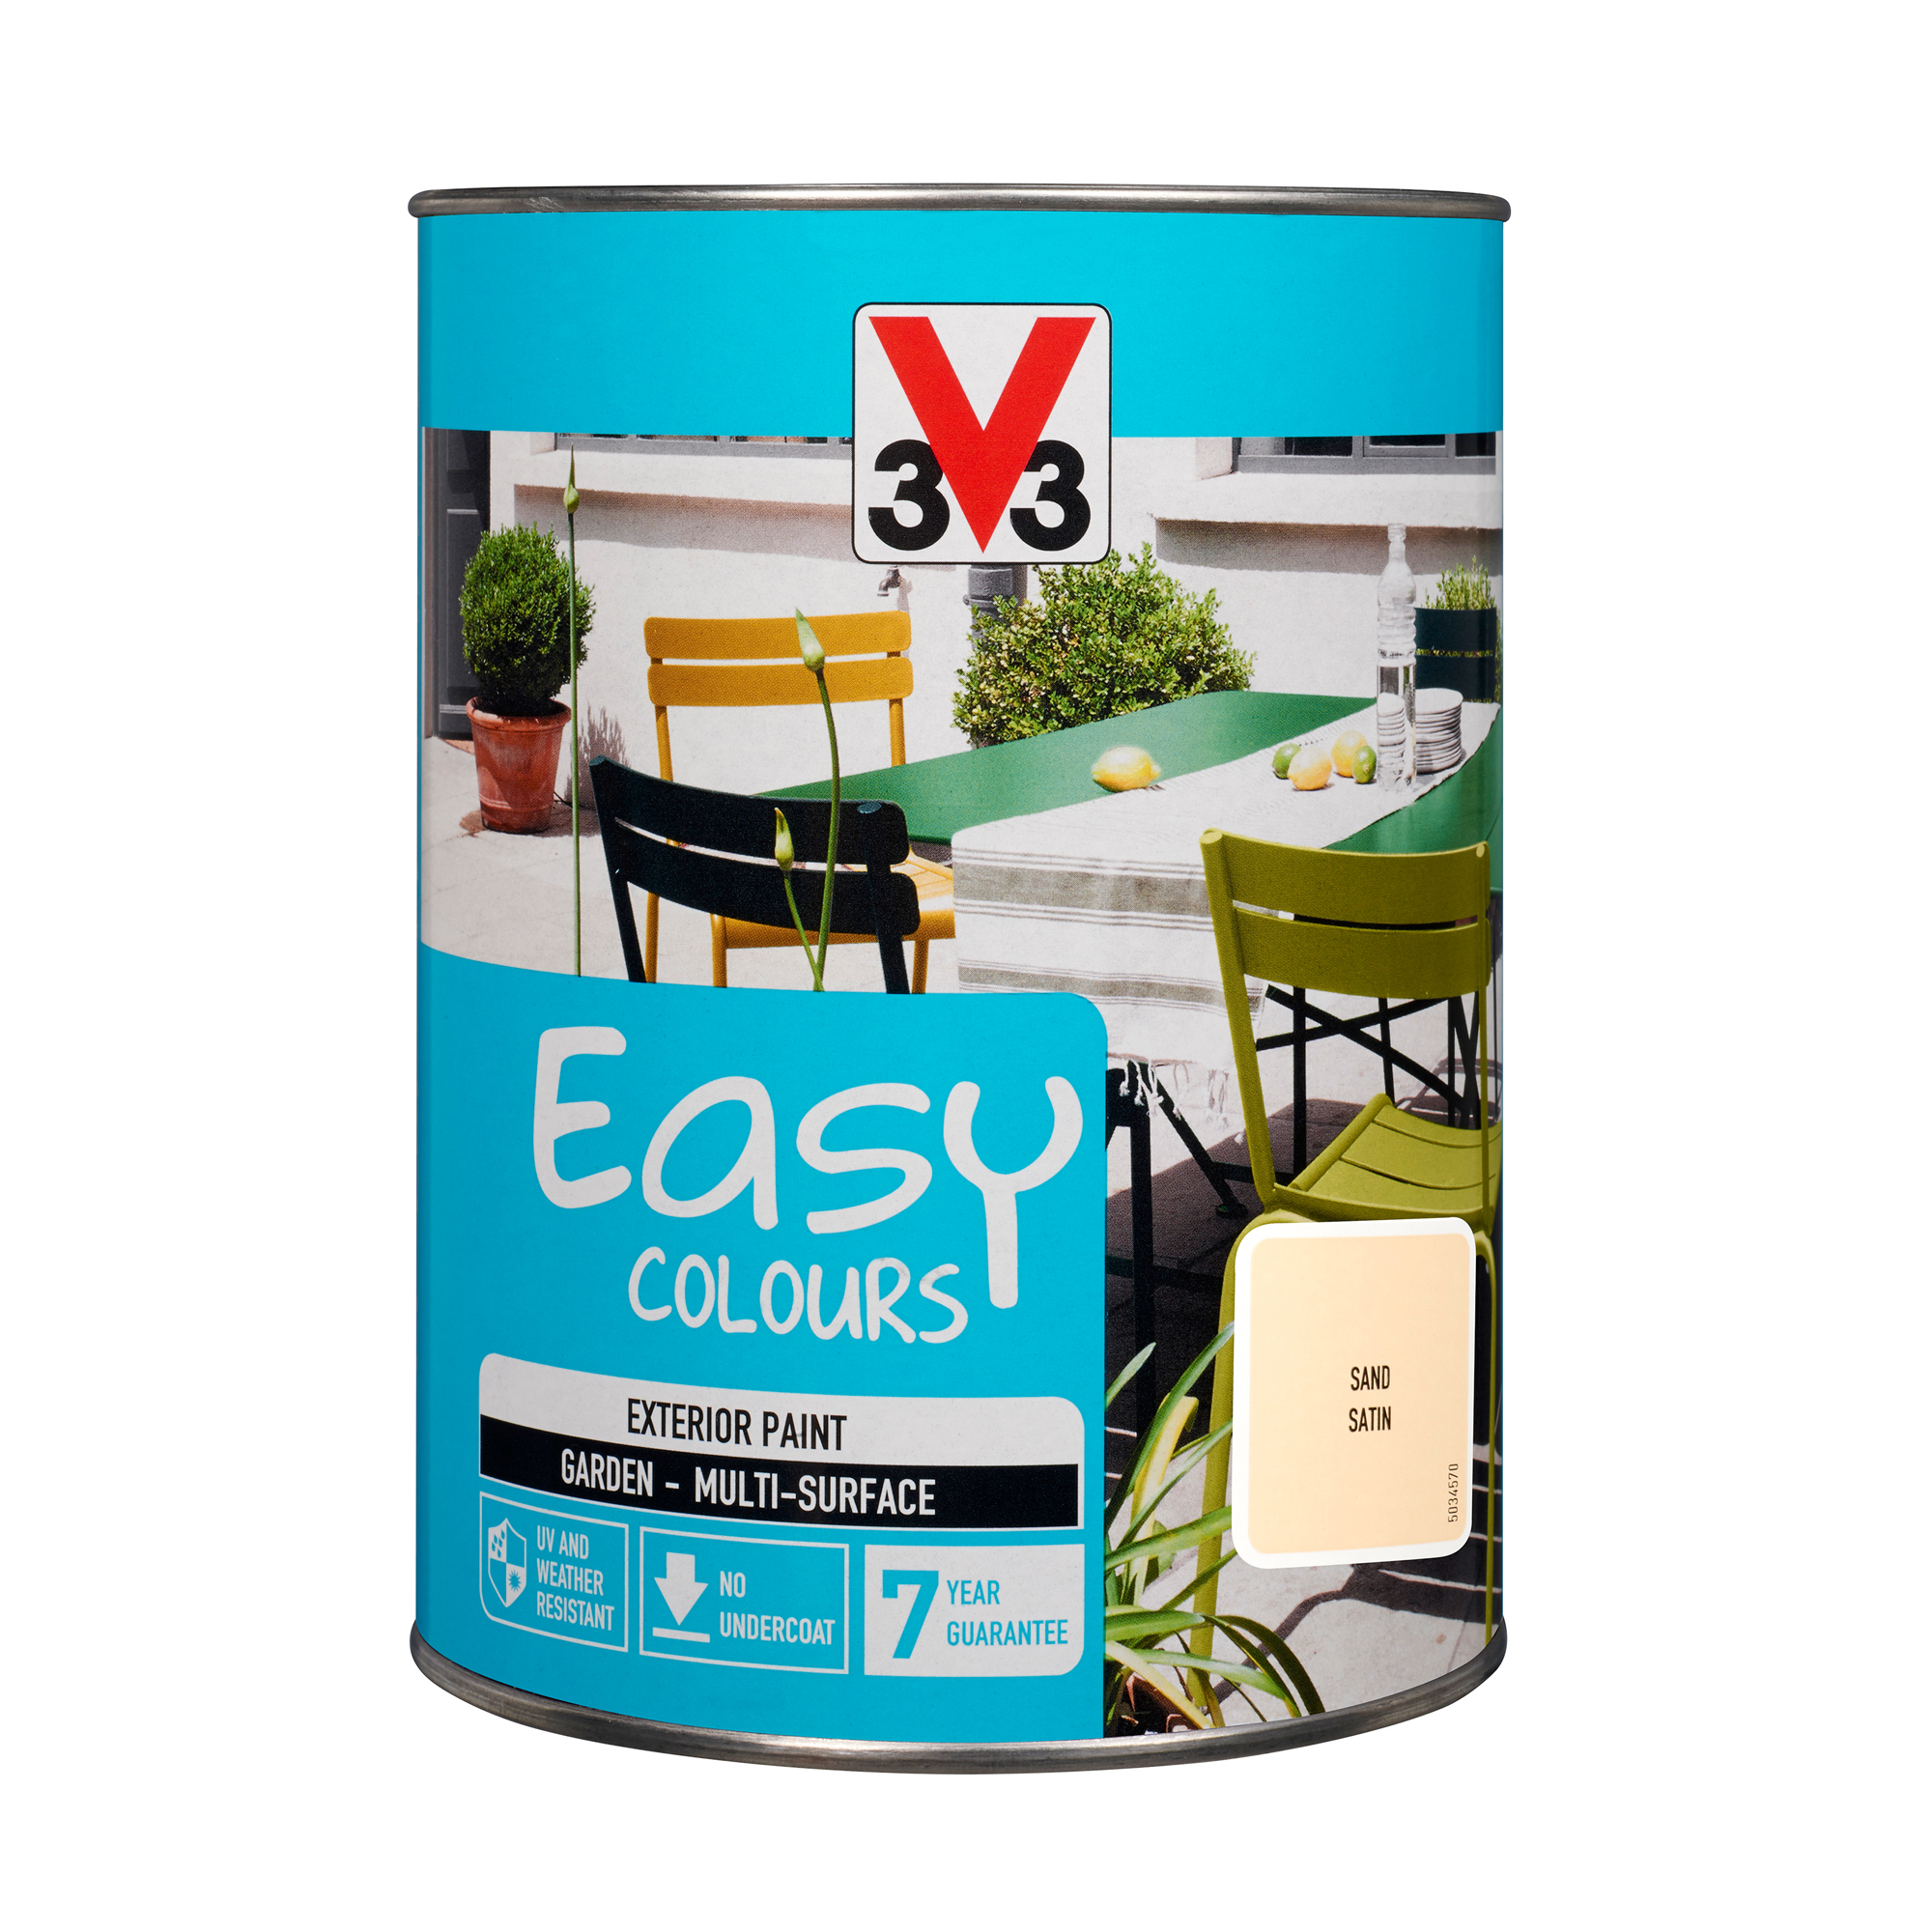 Garden Furniture Colours easy colours - v33 renovating & painting | v33 renovating & painting